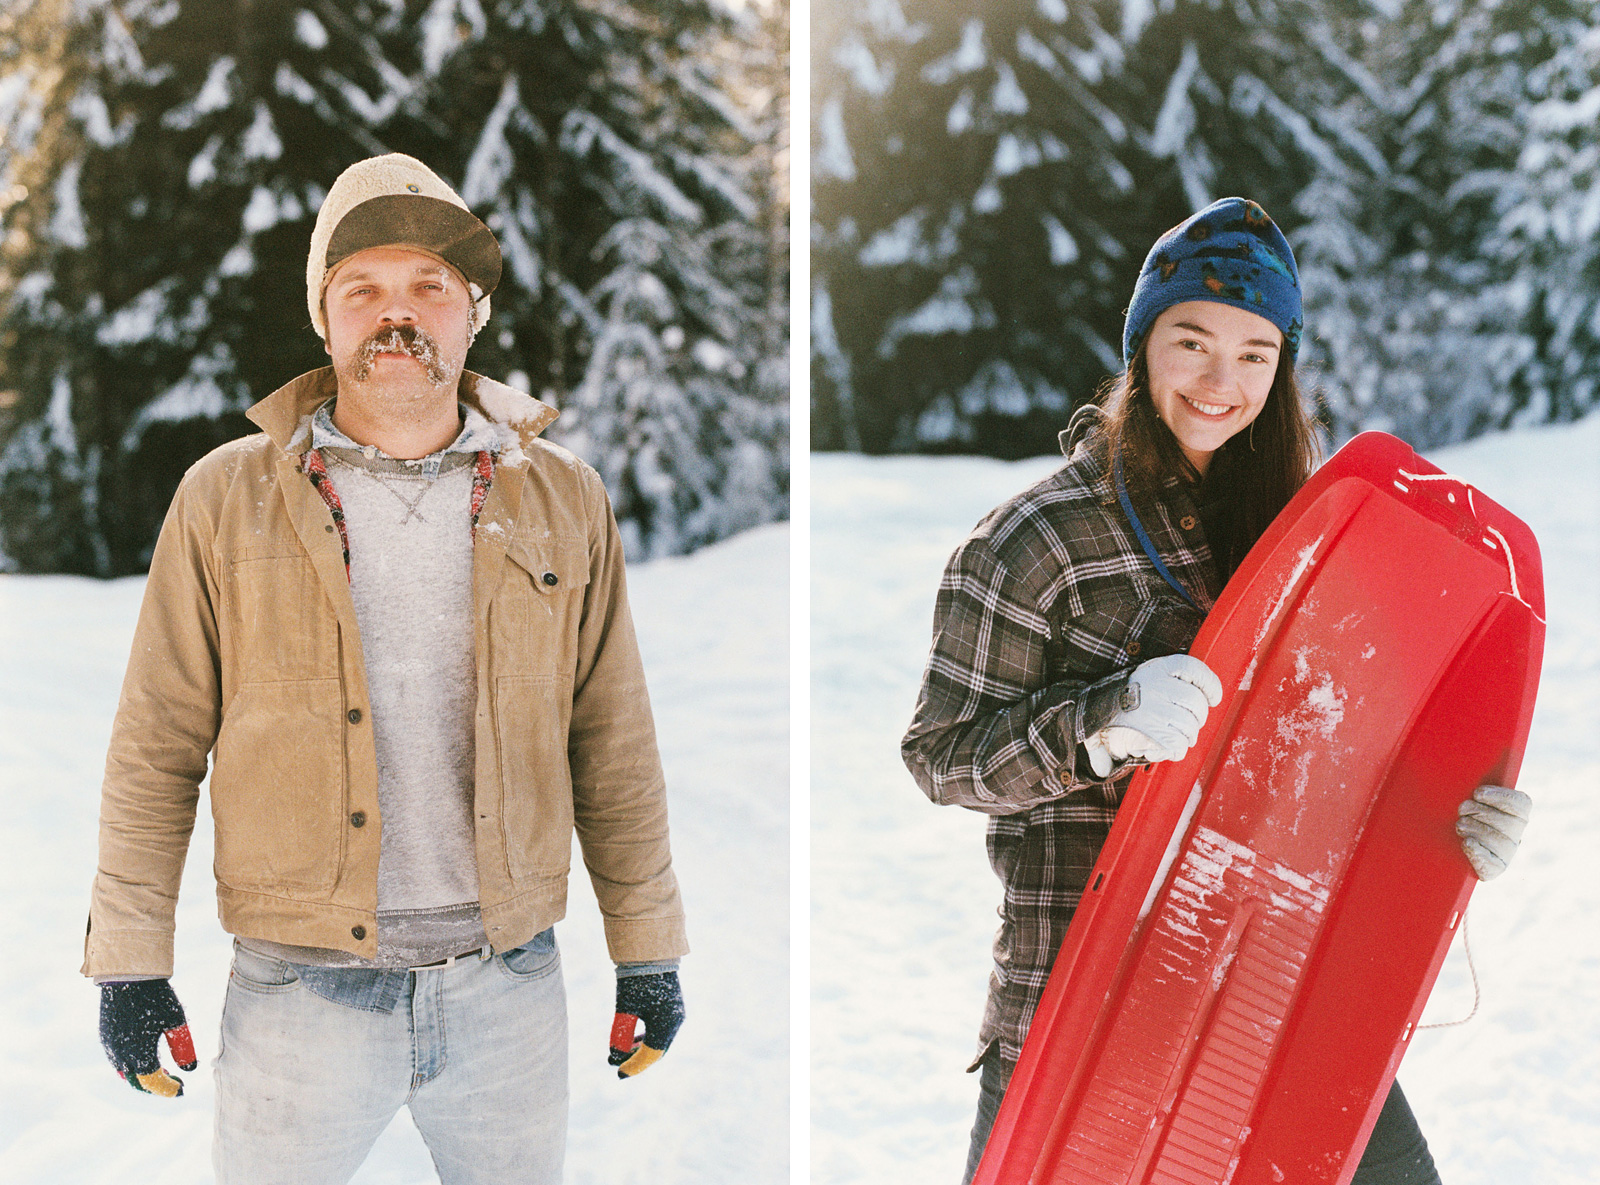 Portraits of friends at the snow sledding hill in Trout Lake, WA | Contax Aria